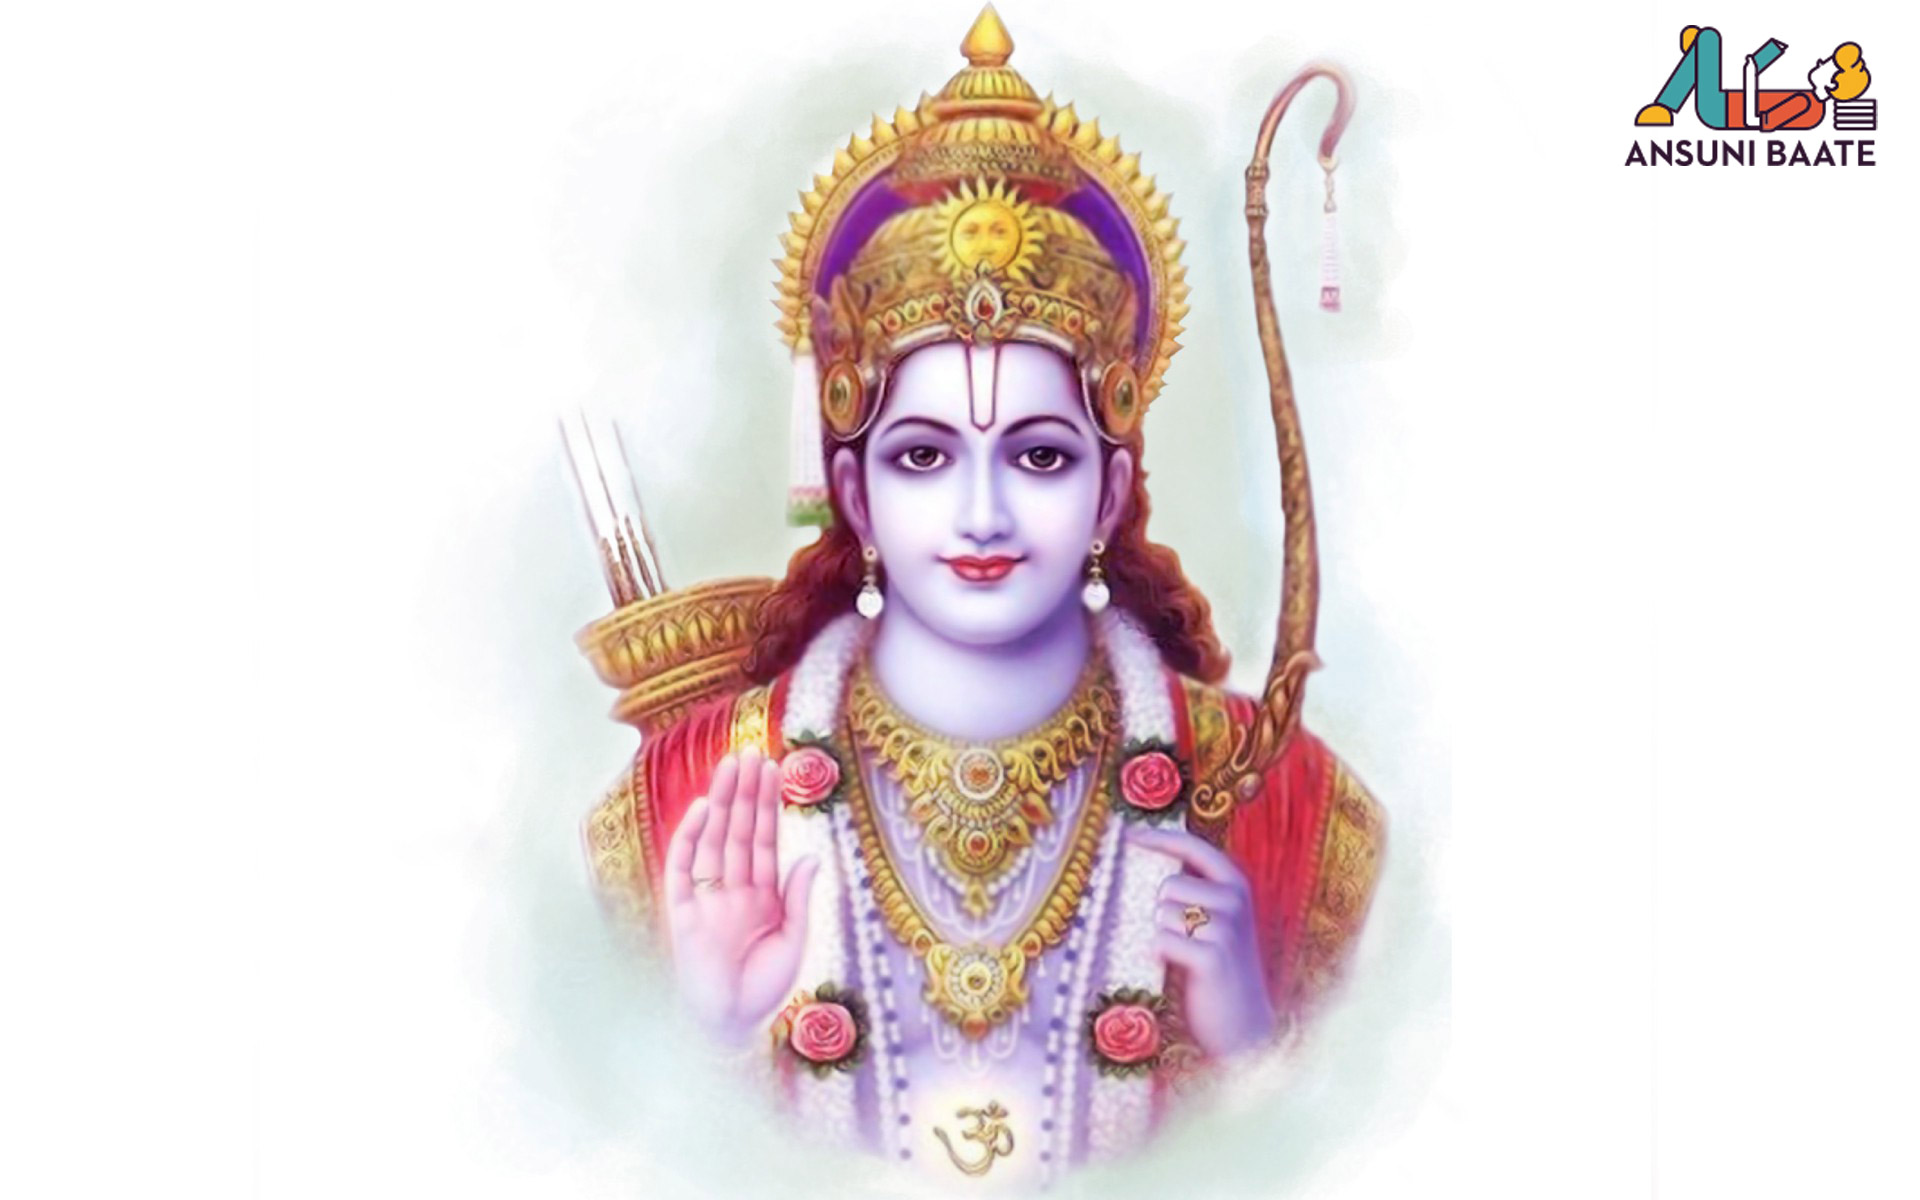 Shri Ram Photos & HD Badminton Images Gallery Free Download